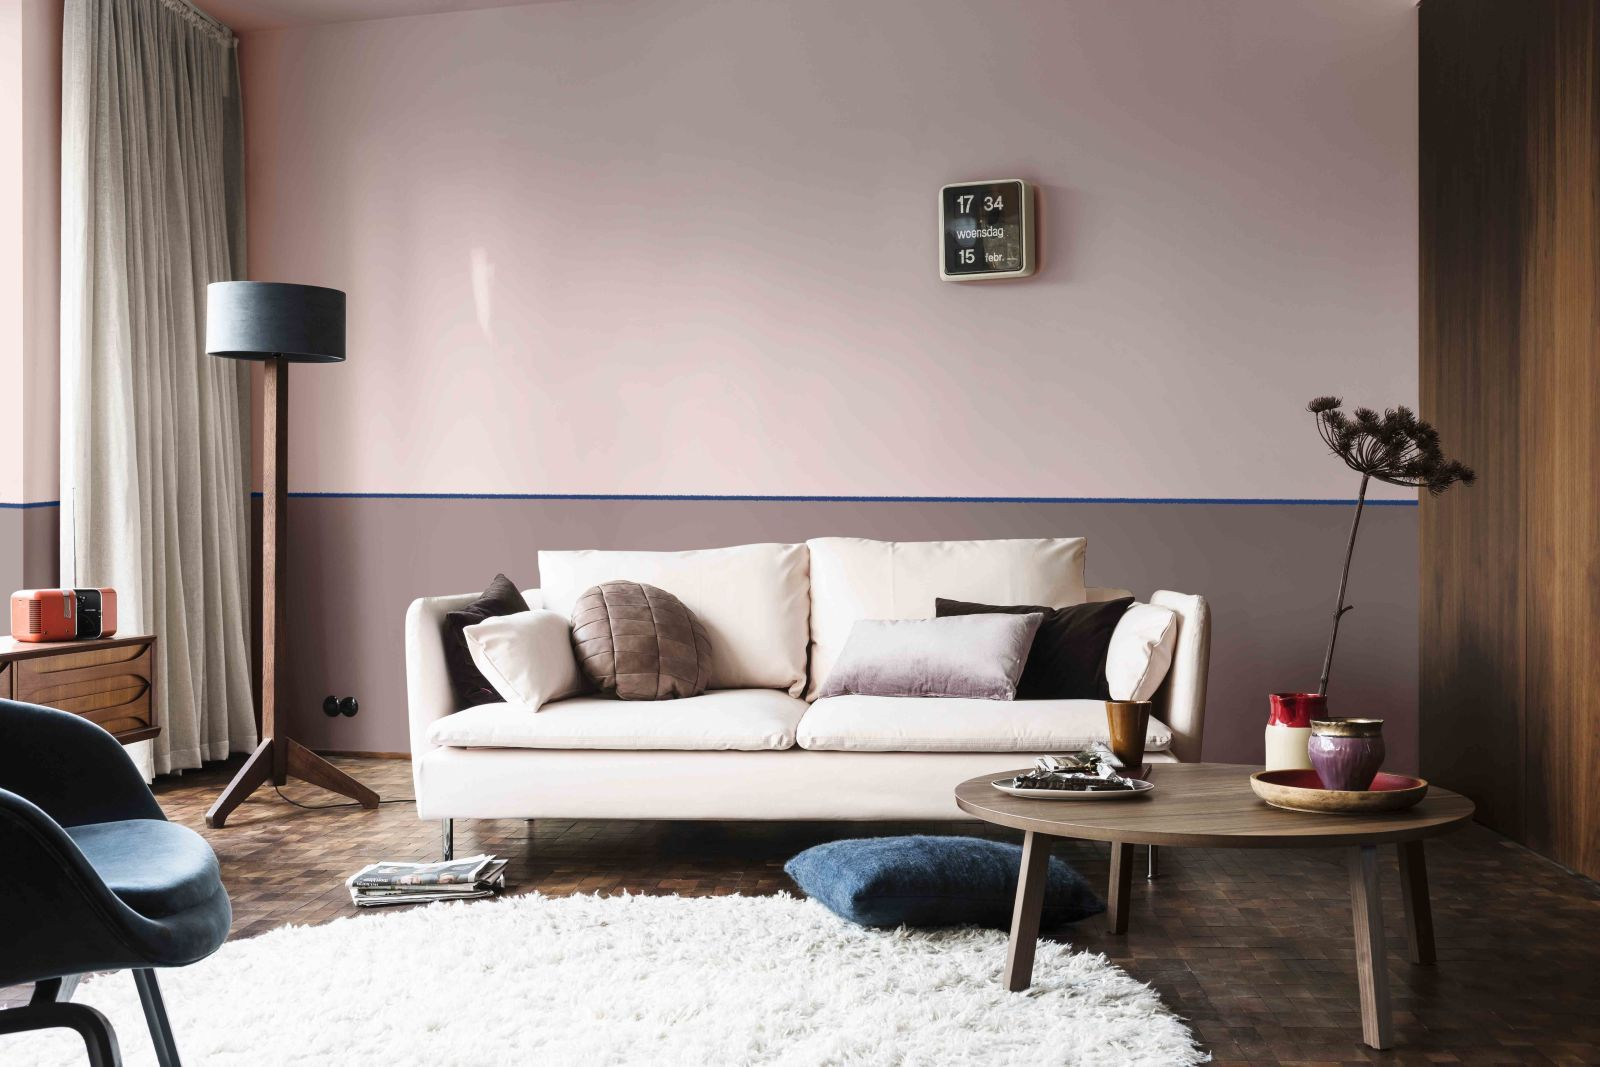 Dulux announce its Colour of the Year 2018 | Farbe des Jahres und Farben